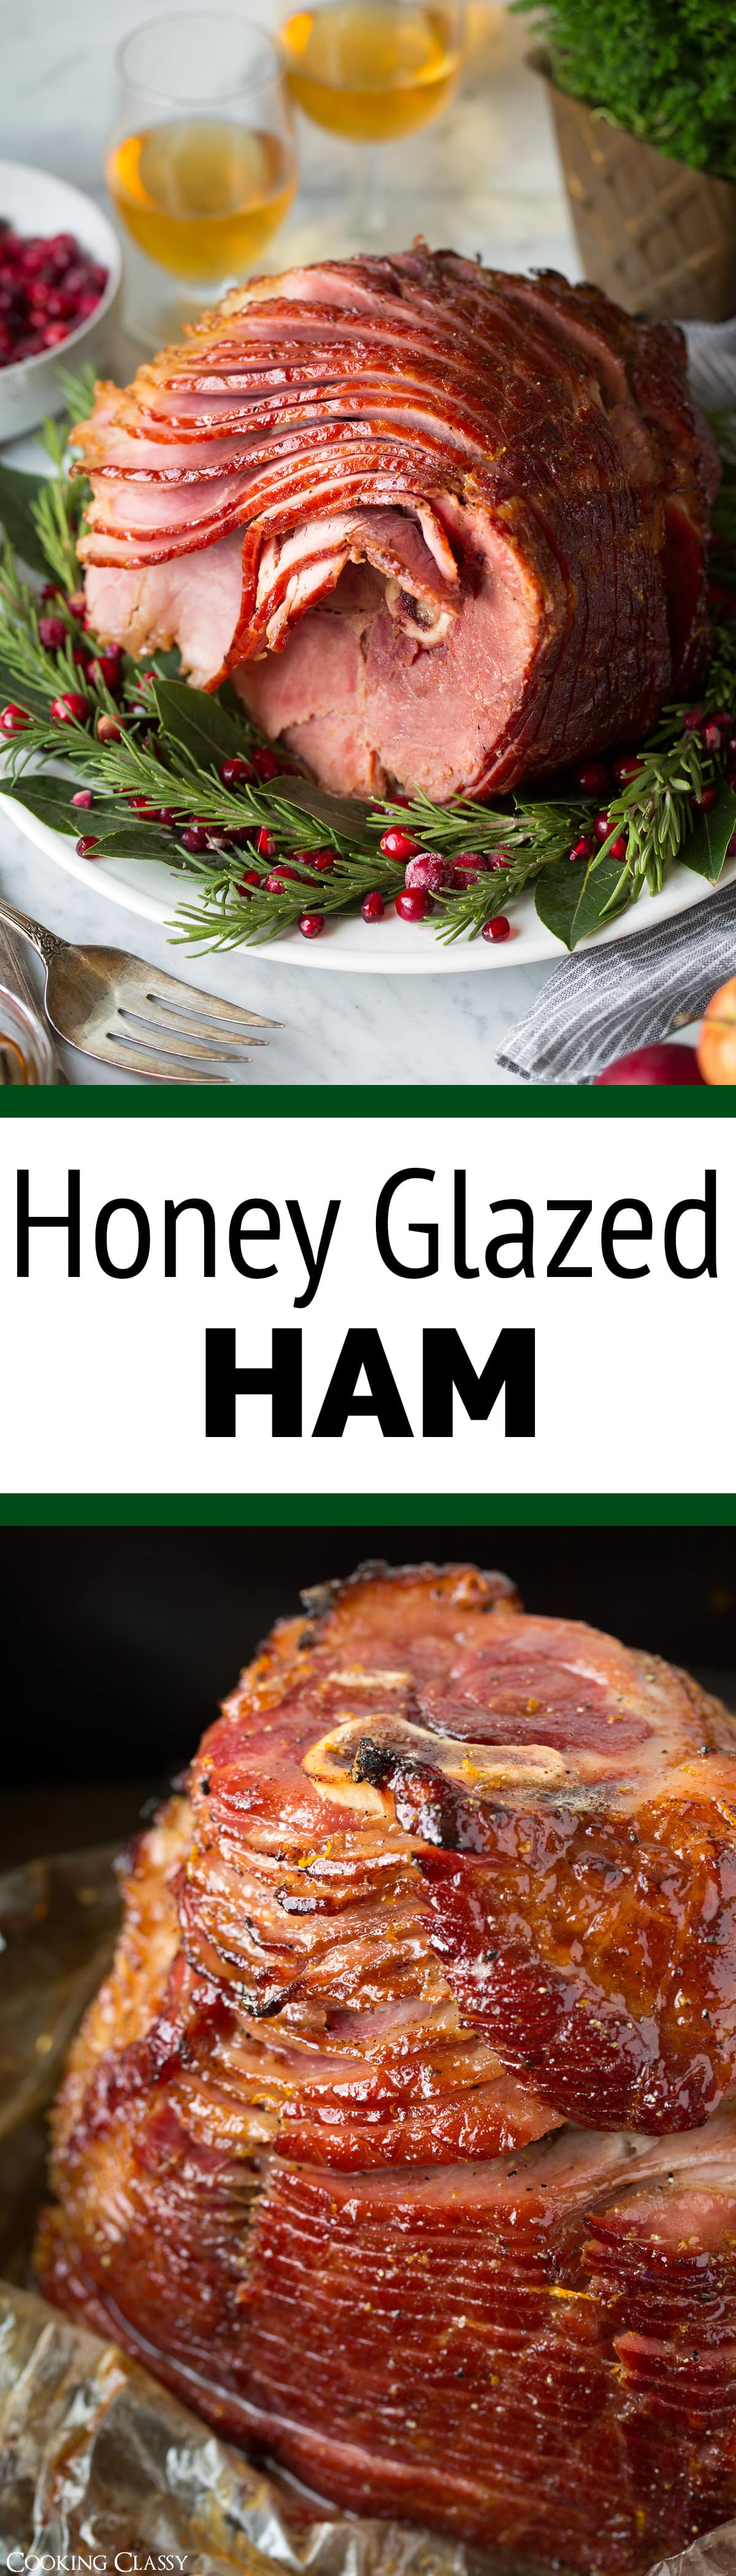 An amazingly delicious holiday ham! Baked in an oven bag and cooked at a low temperature so you don't end up with dry slices. And that sweet honey glaze is the perfect finish to the salty hickory smoked ham. #honeyglazedham #ham #christmas #easter #thanksgiving #recipe